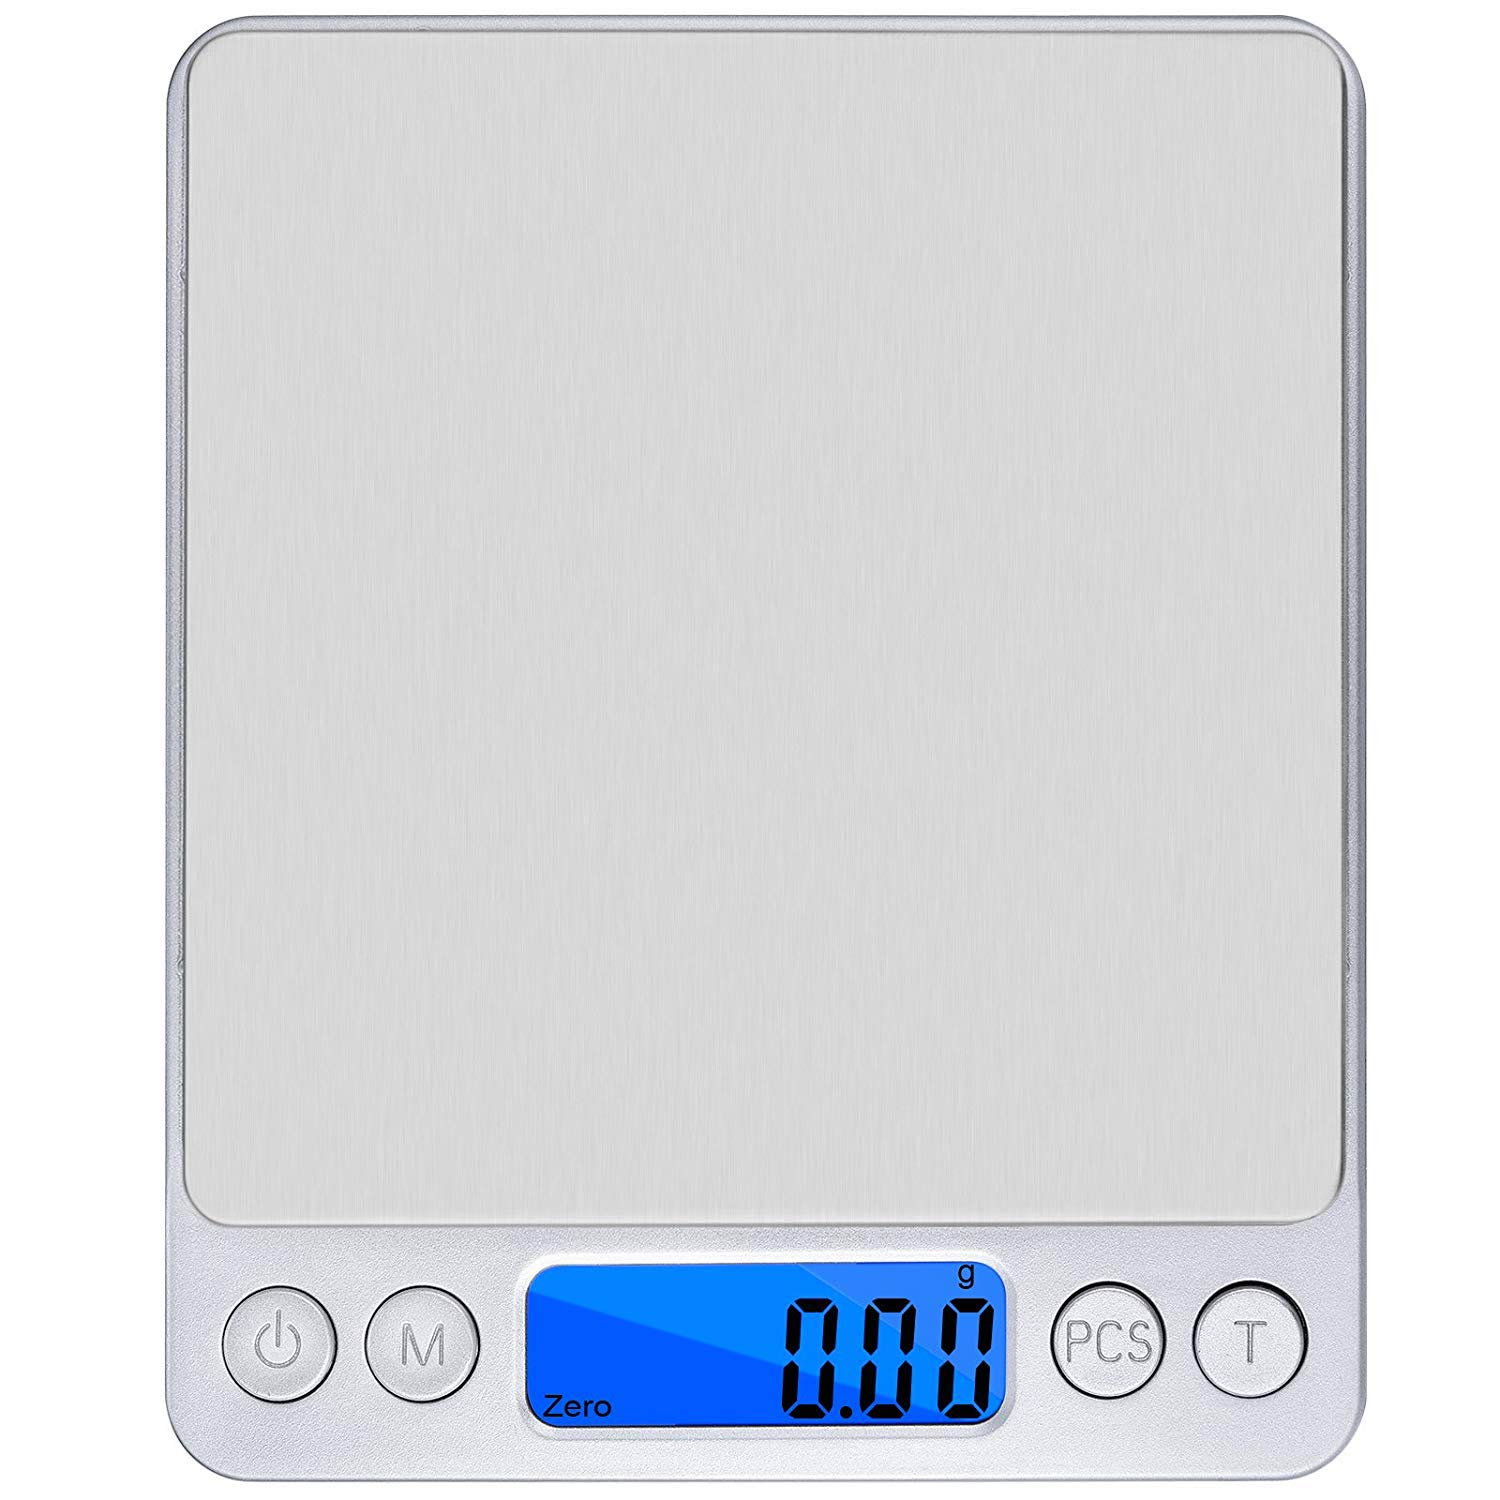 Postecks 500g x 0.01g Precison Kitchen Scale with Trae Funtion and LCD Blue Backlight, Pro Digital Kitchen Scales Smart Weigh for Weigh Foods, Powder, Fine Items, Jewellery Etc